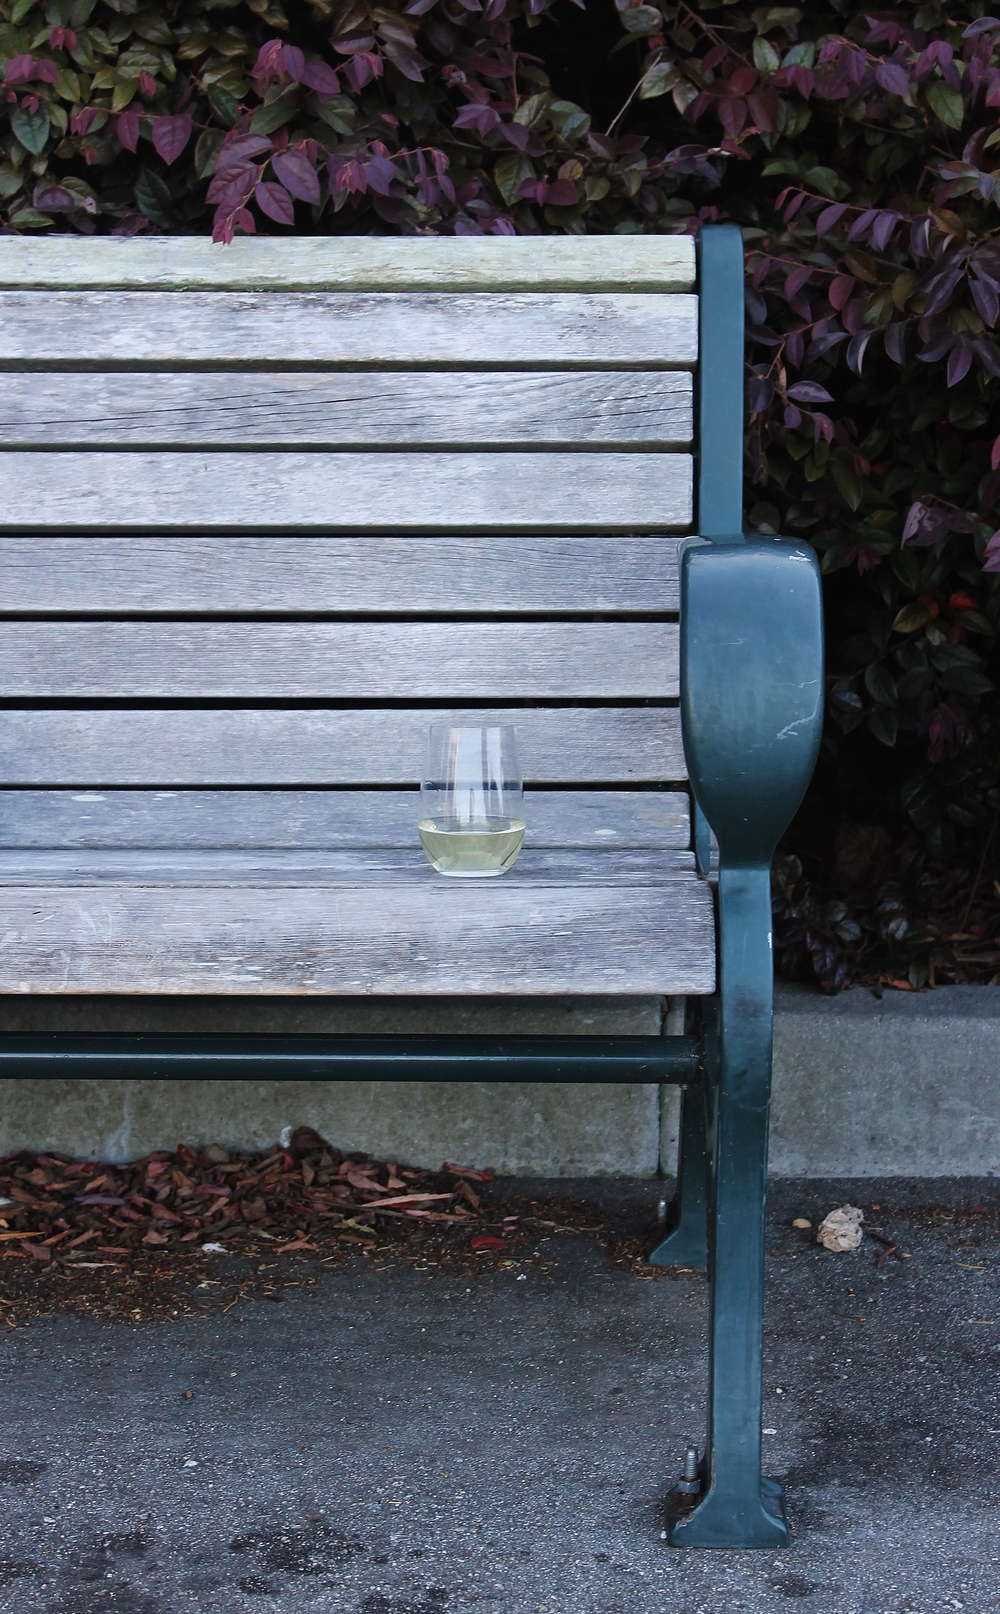 A little glass sitting on a bench...just waiting for the one who will pick them up and take them.